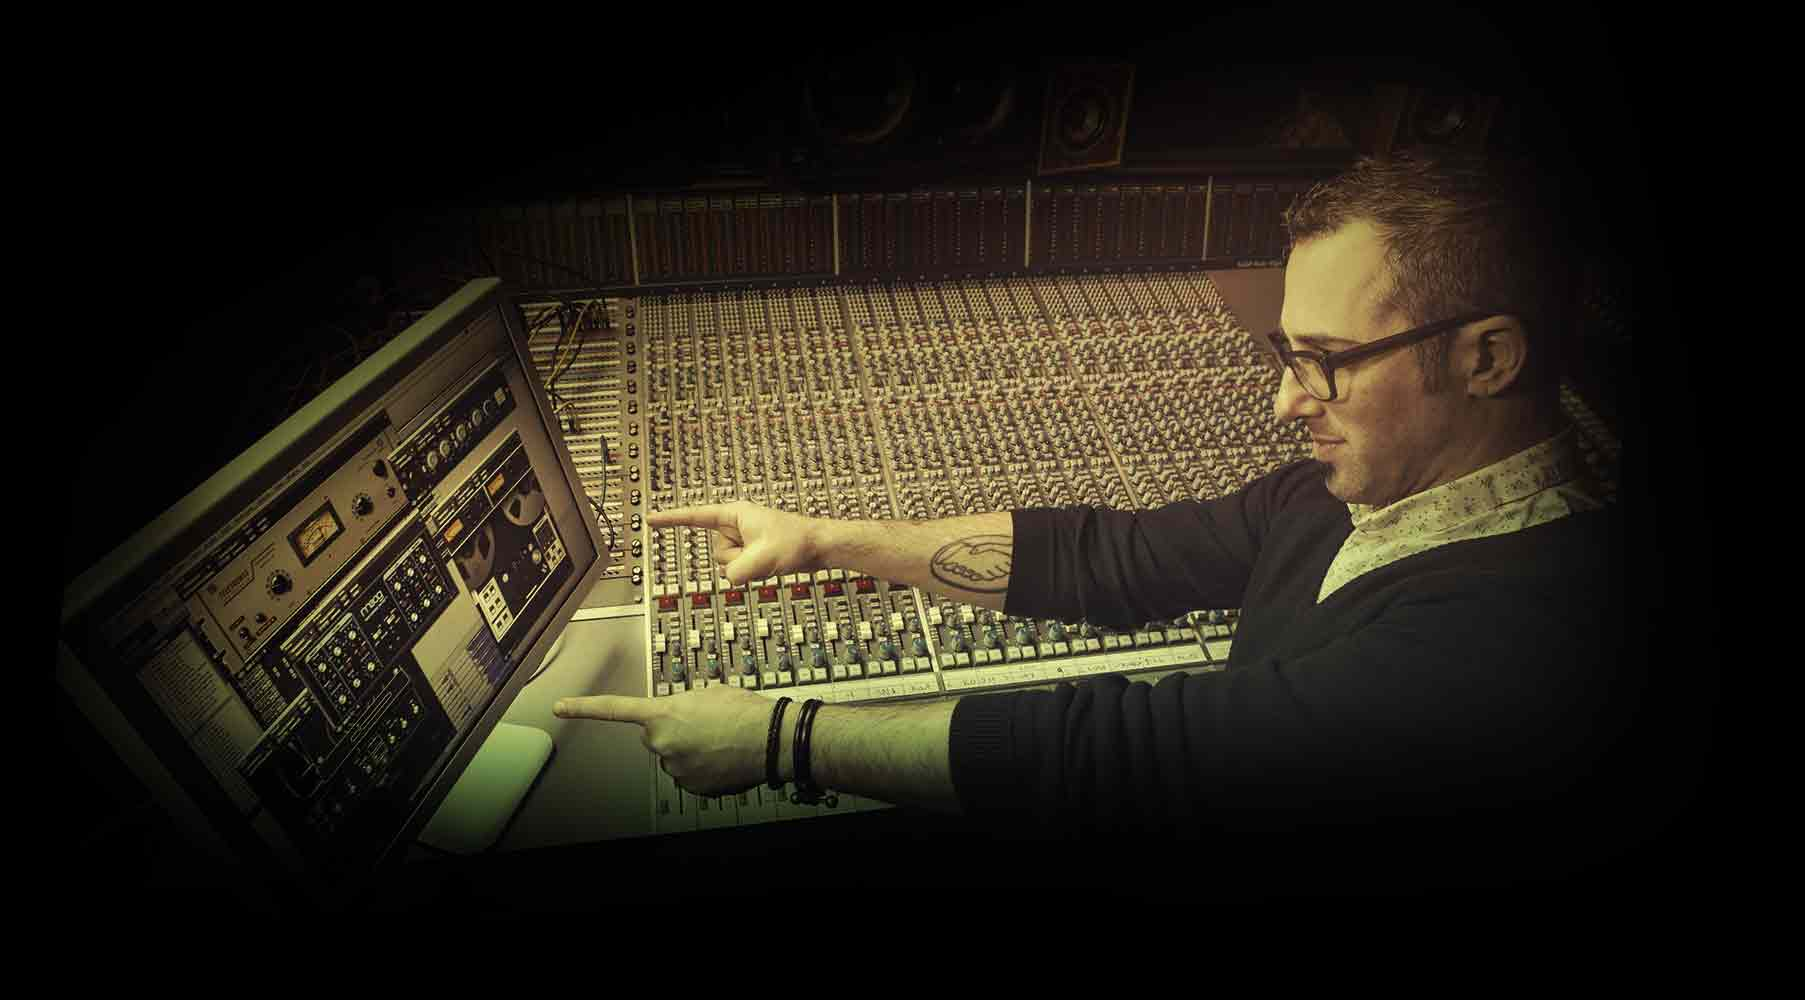 """Joel Hamilton on Mixing Pretty Lights' """"A Color Map of the Sun"""" with UAD Plug-Ins"""